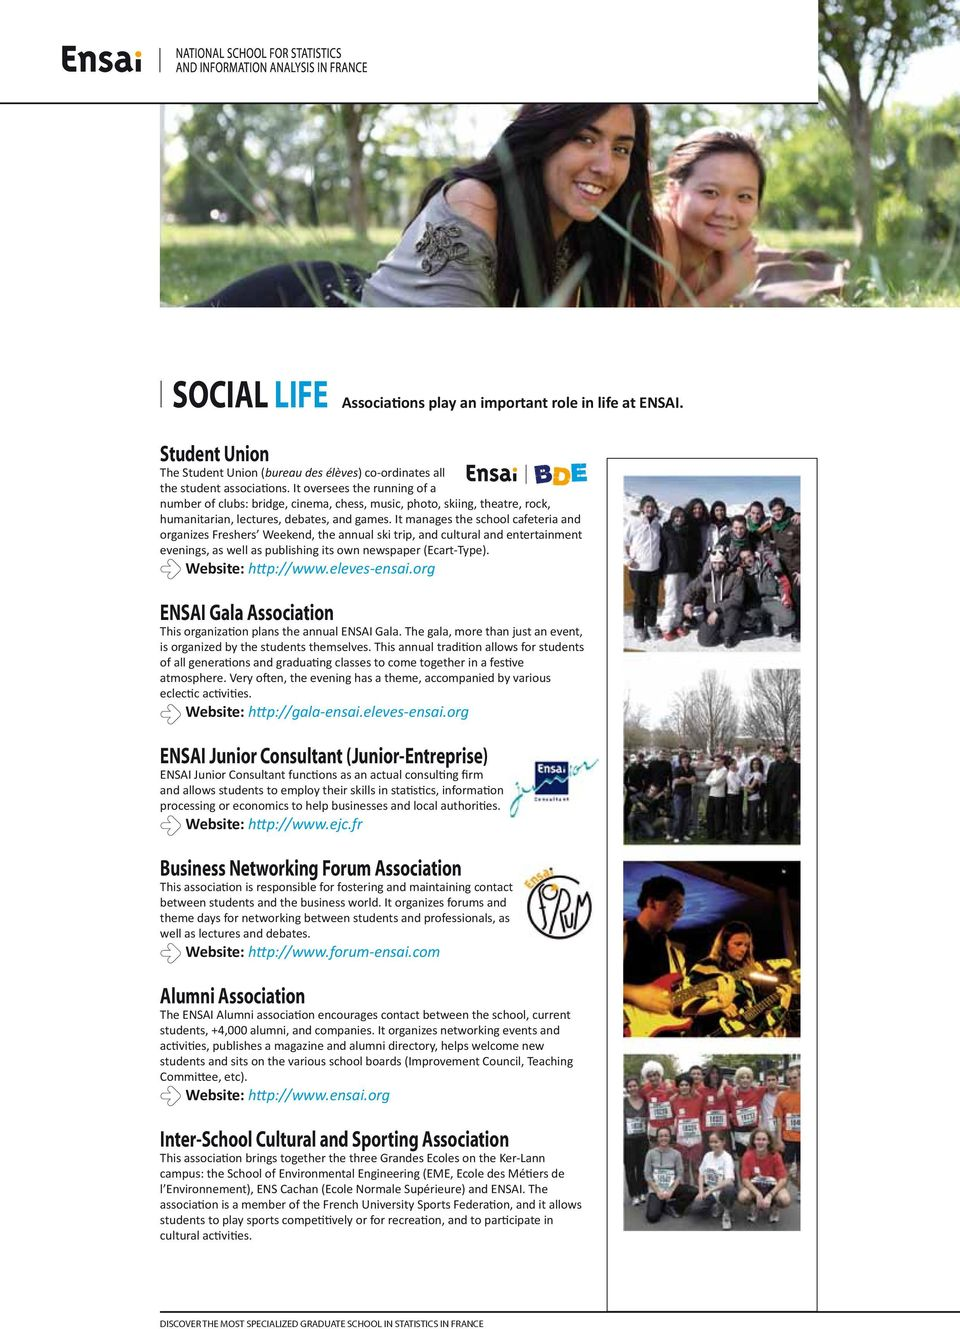 It manages the school cafeteria and organizes Freshers Weekend, the annual ski trip, and cultural and entertainment evenings, as well as publishing its own newspaper (Ecart-Type). Website: http://www.